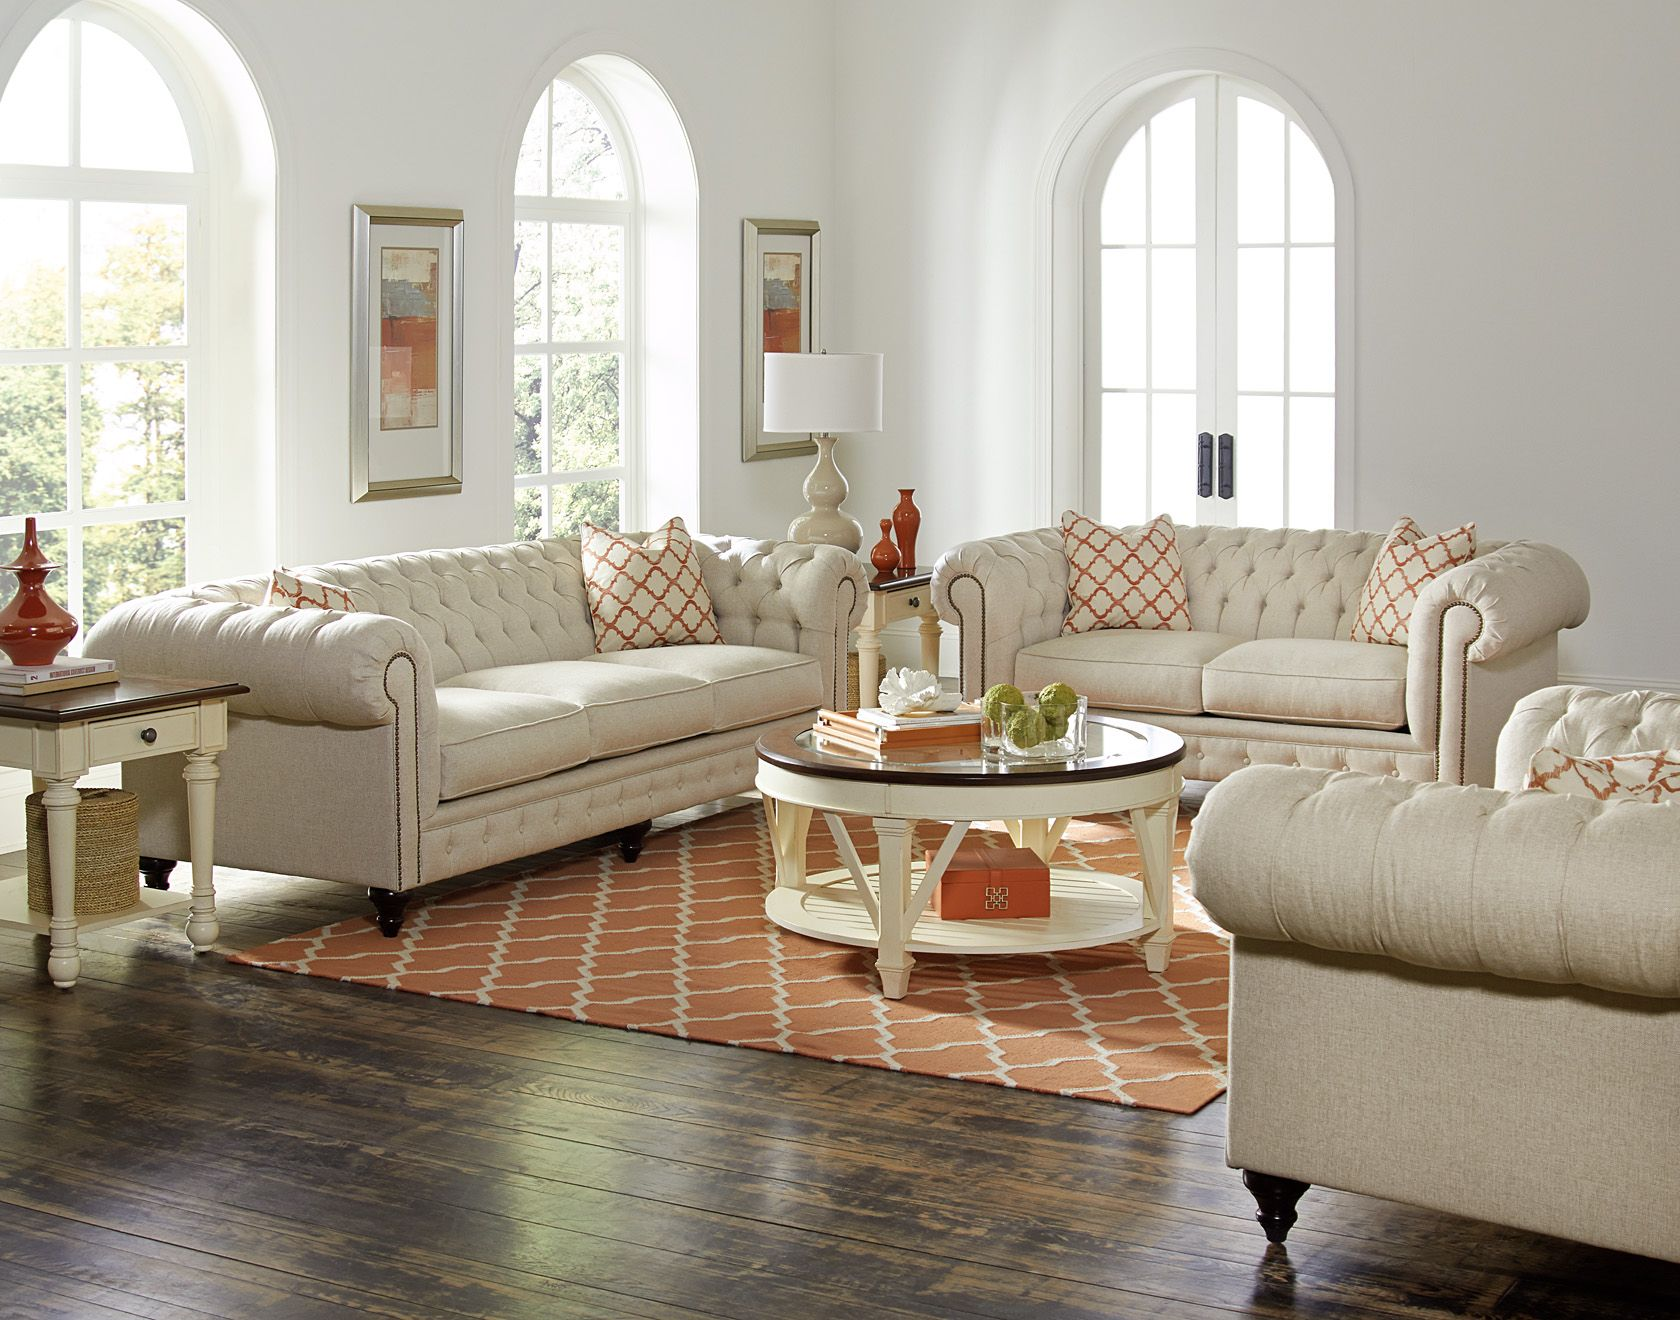 England Furniture 2r00 With Grande Linen And Enhance Mango Fabrics